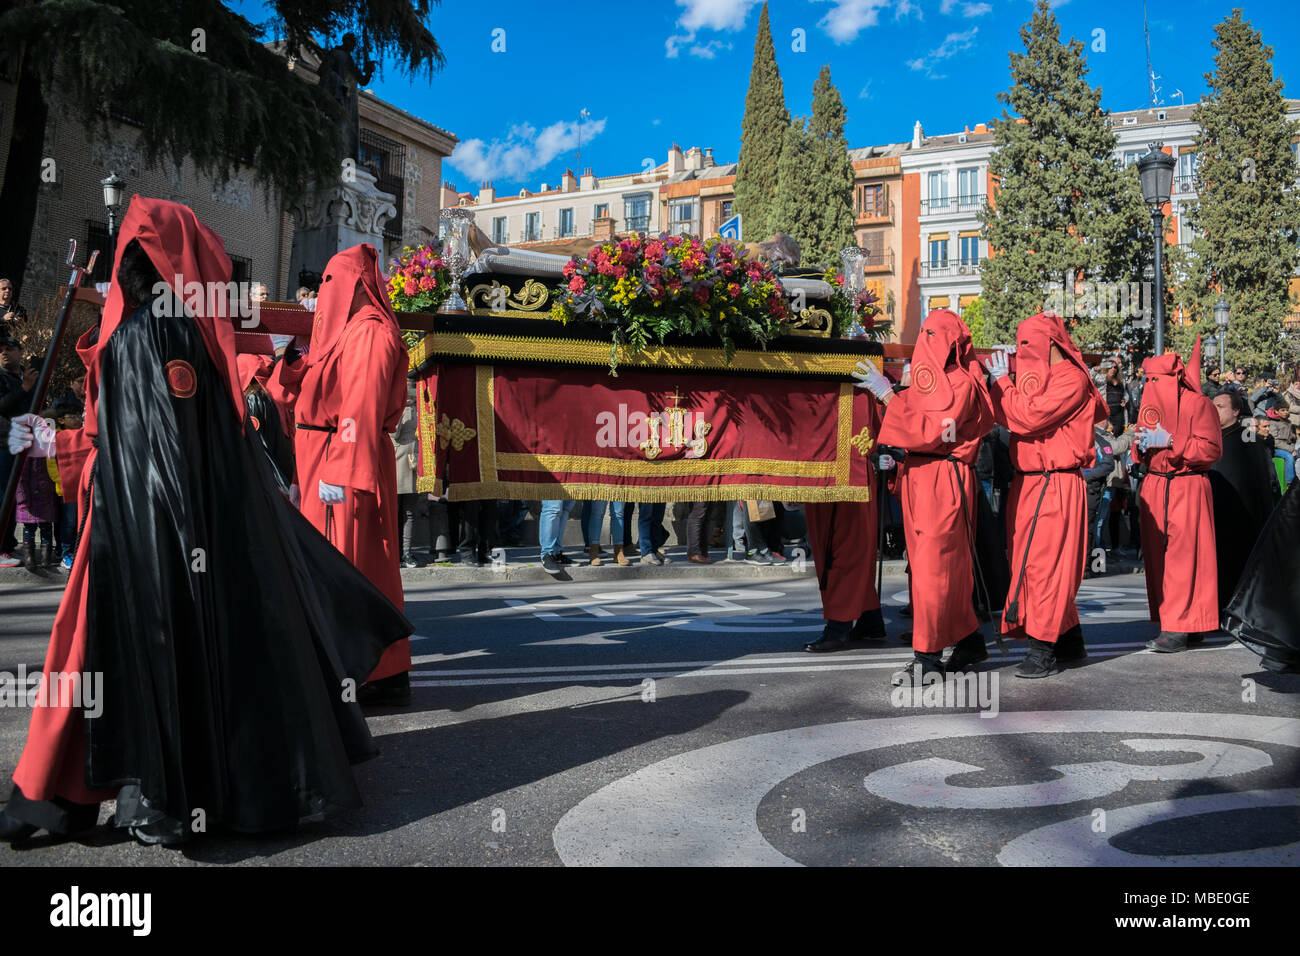 Penitents carry an effigy of Jesus during an Easter parade on Holy Saturday, Semana Santa (Holy Week) parades, Madrid, Spain, 2018 - Stock Image